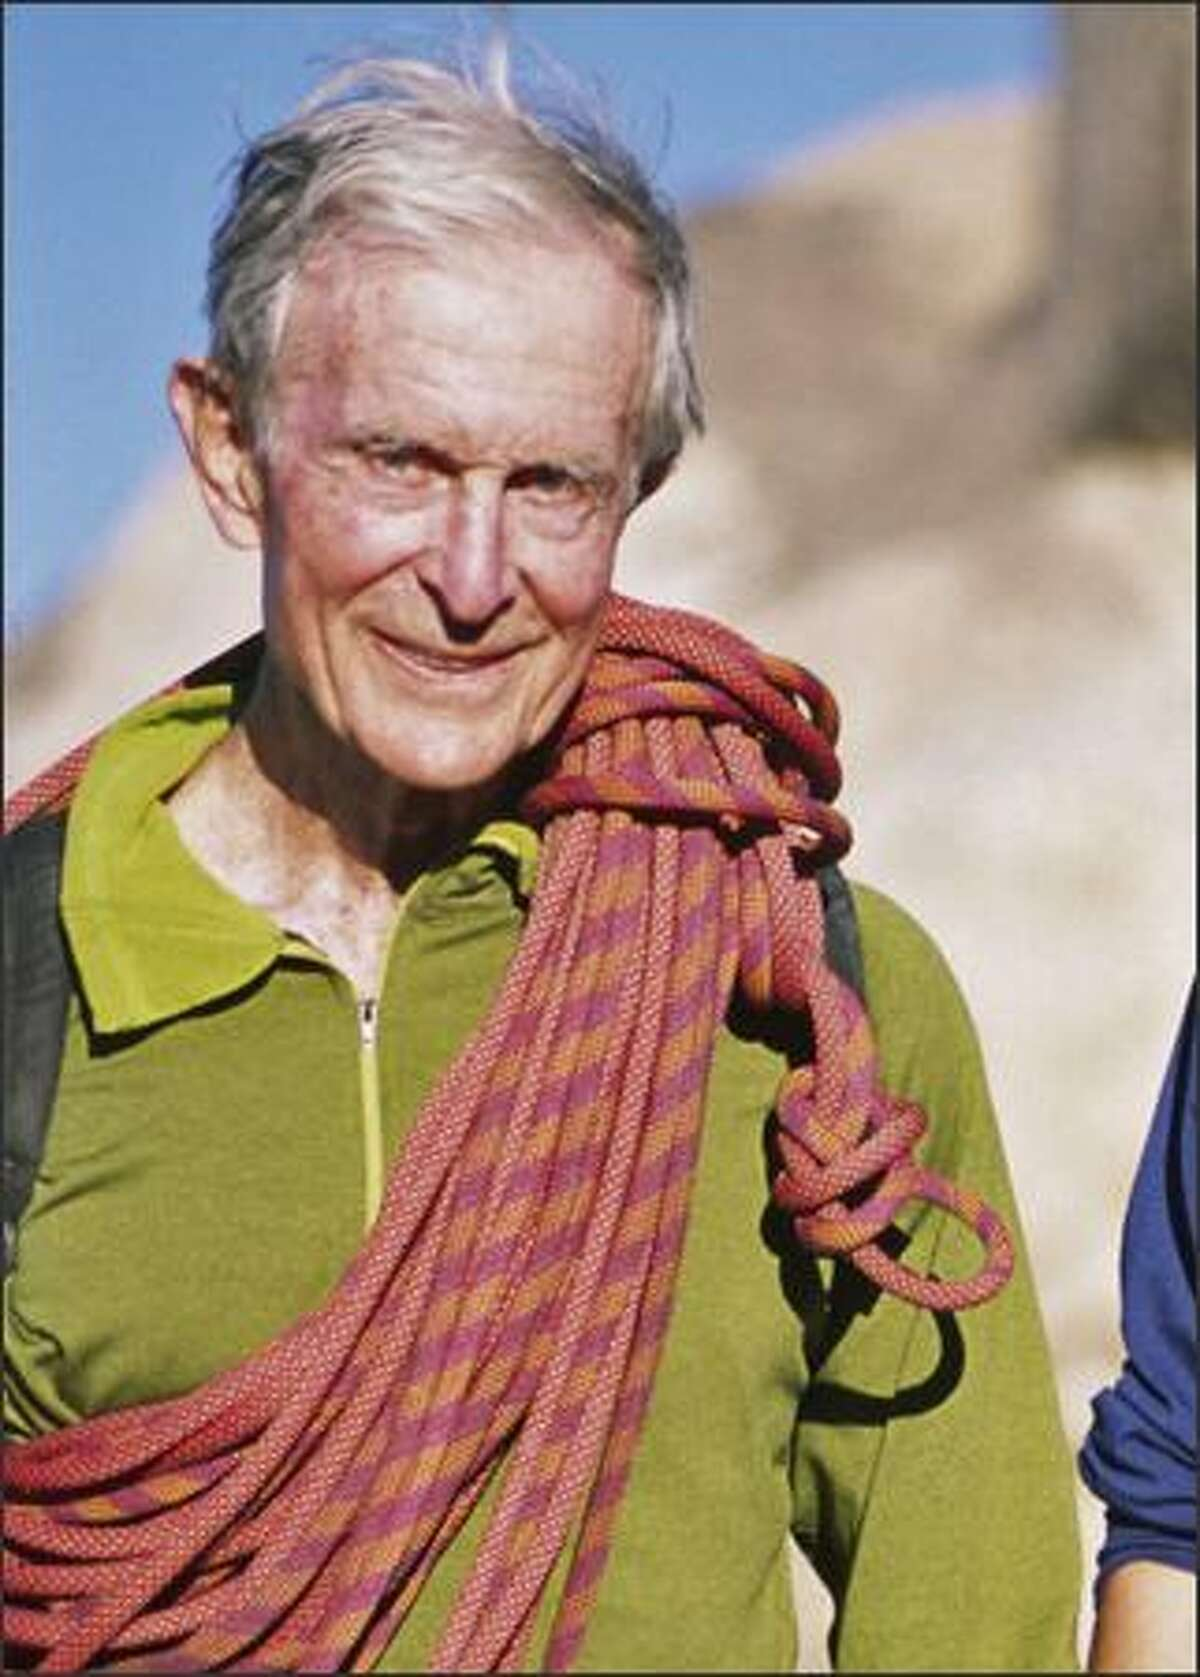 Stimson Bullitt, 83 at the time, climbs a tough Illusion Dweller route in Joshua Tree National Park in November 2002. During COVID-19 pandemic, climbers are advised to go for less risky challenges.